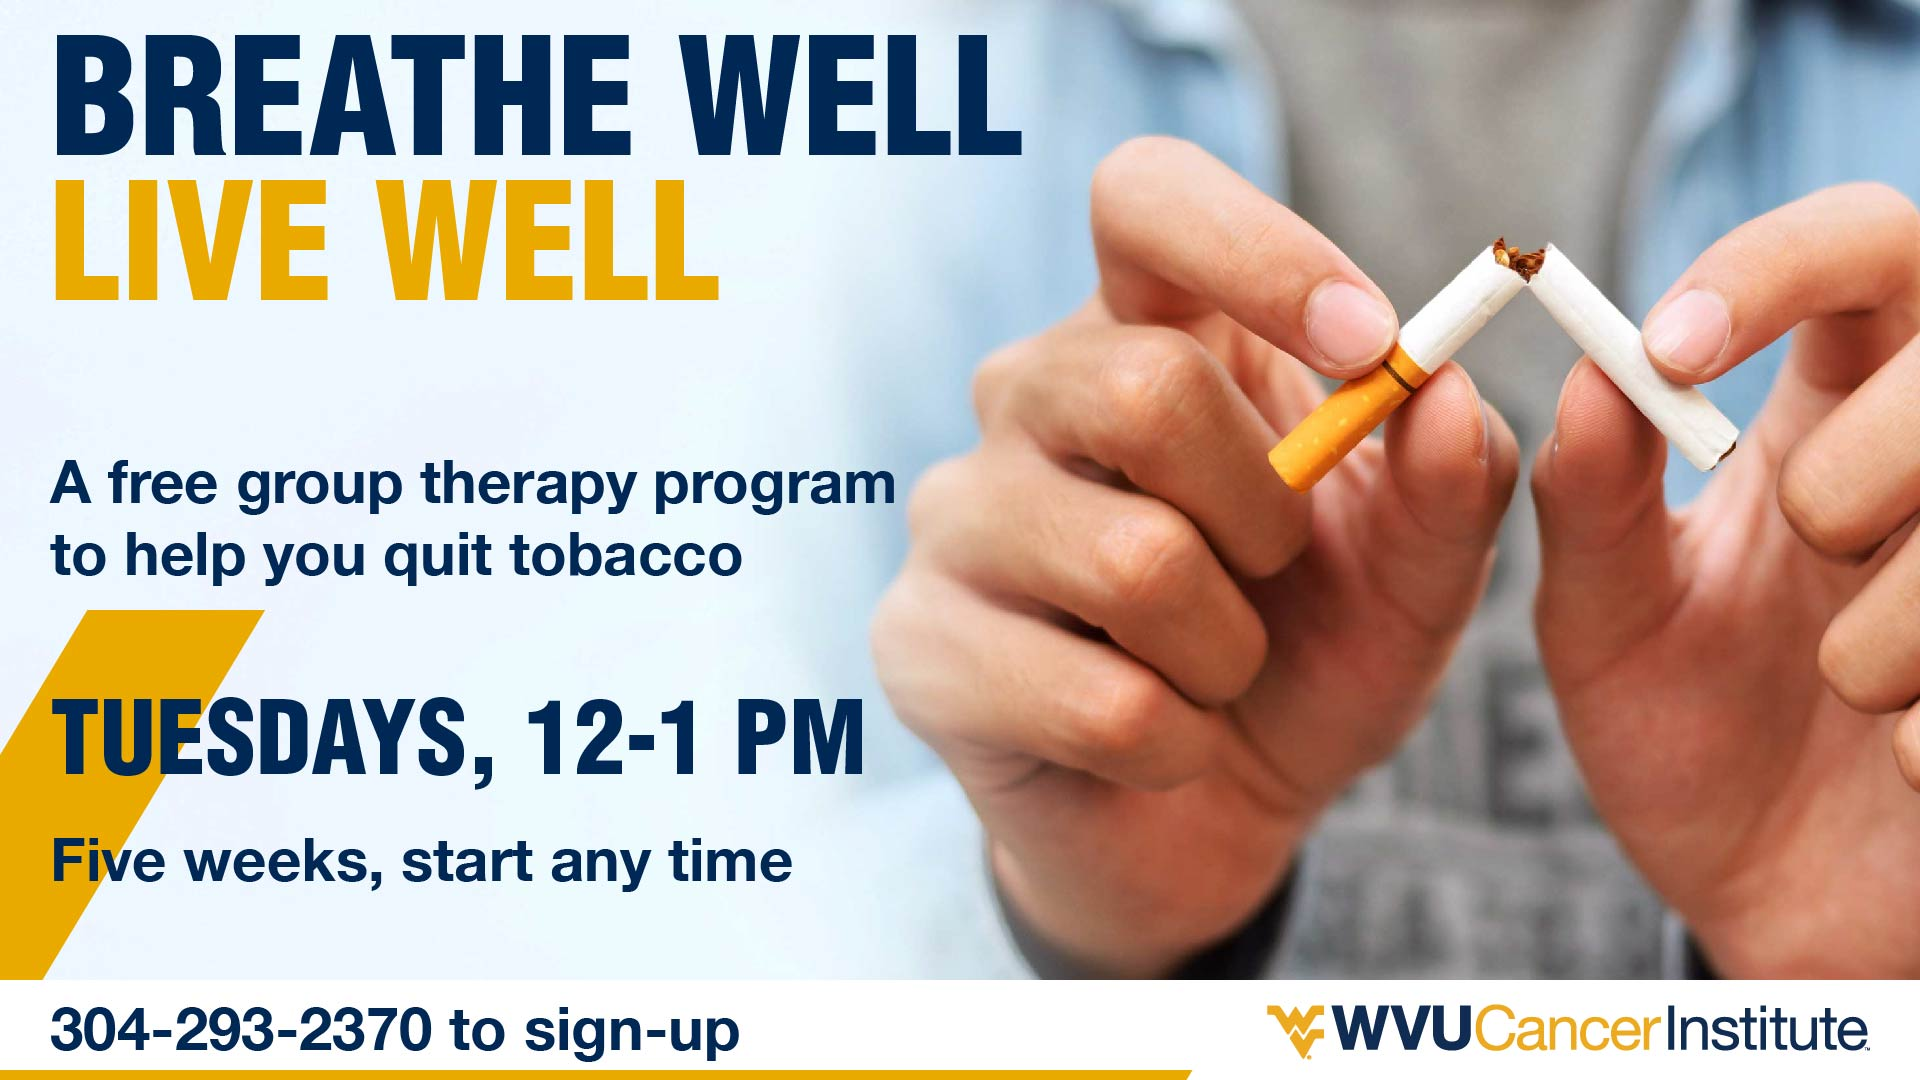 Breathe Well, Live Well - Tobacco Cessation Program starting tuesdays at 12 p.m., Call 304-293-2370 to register.